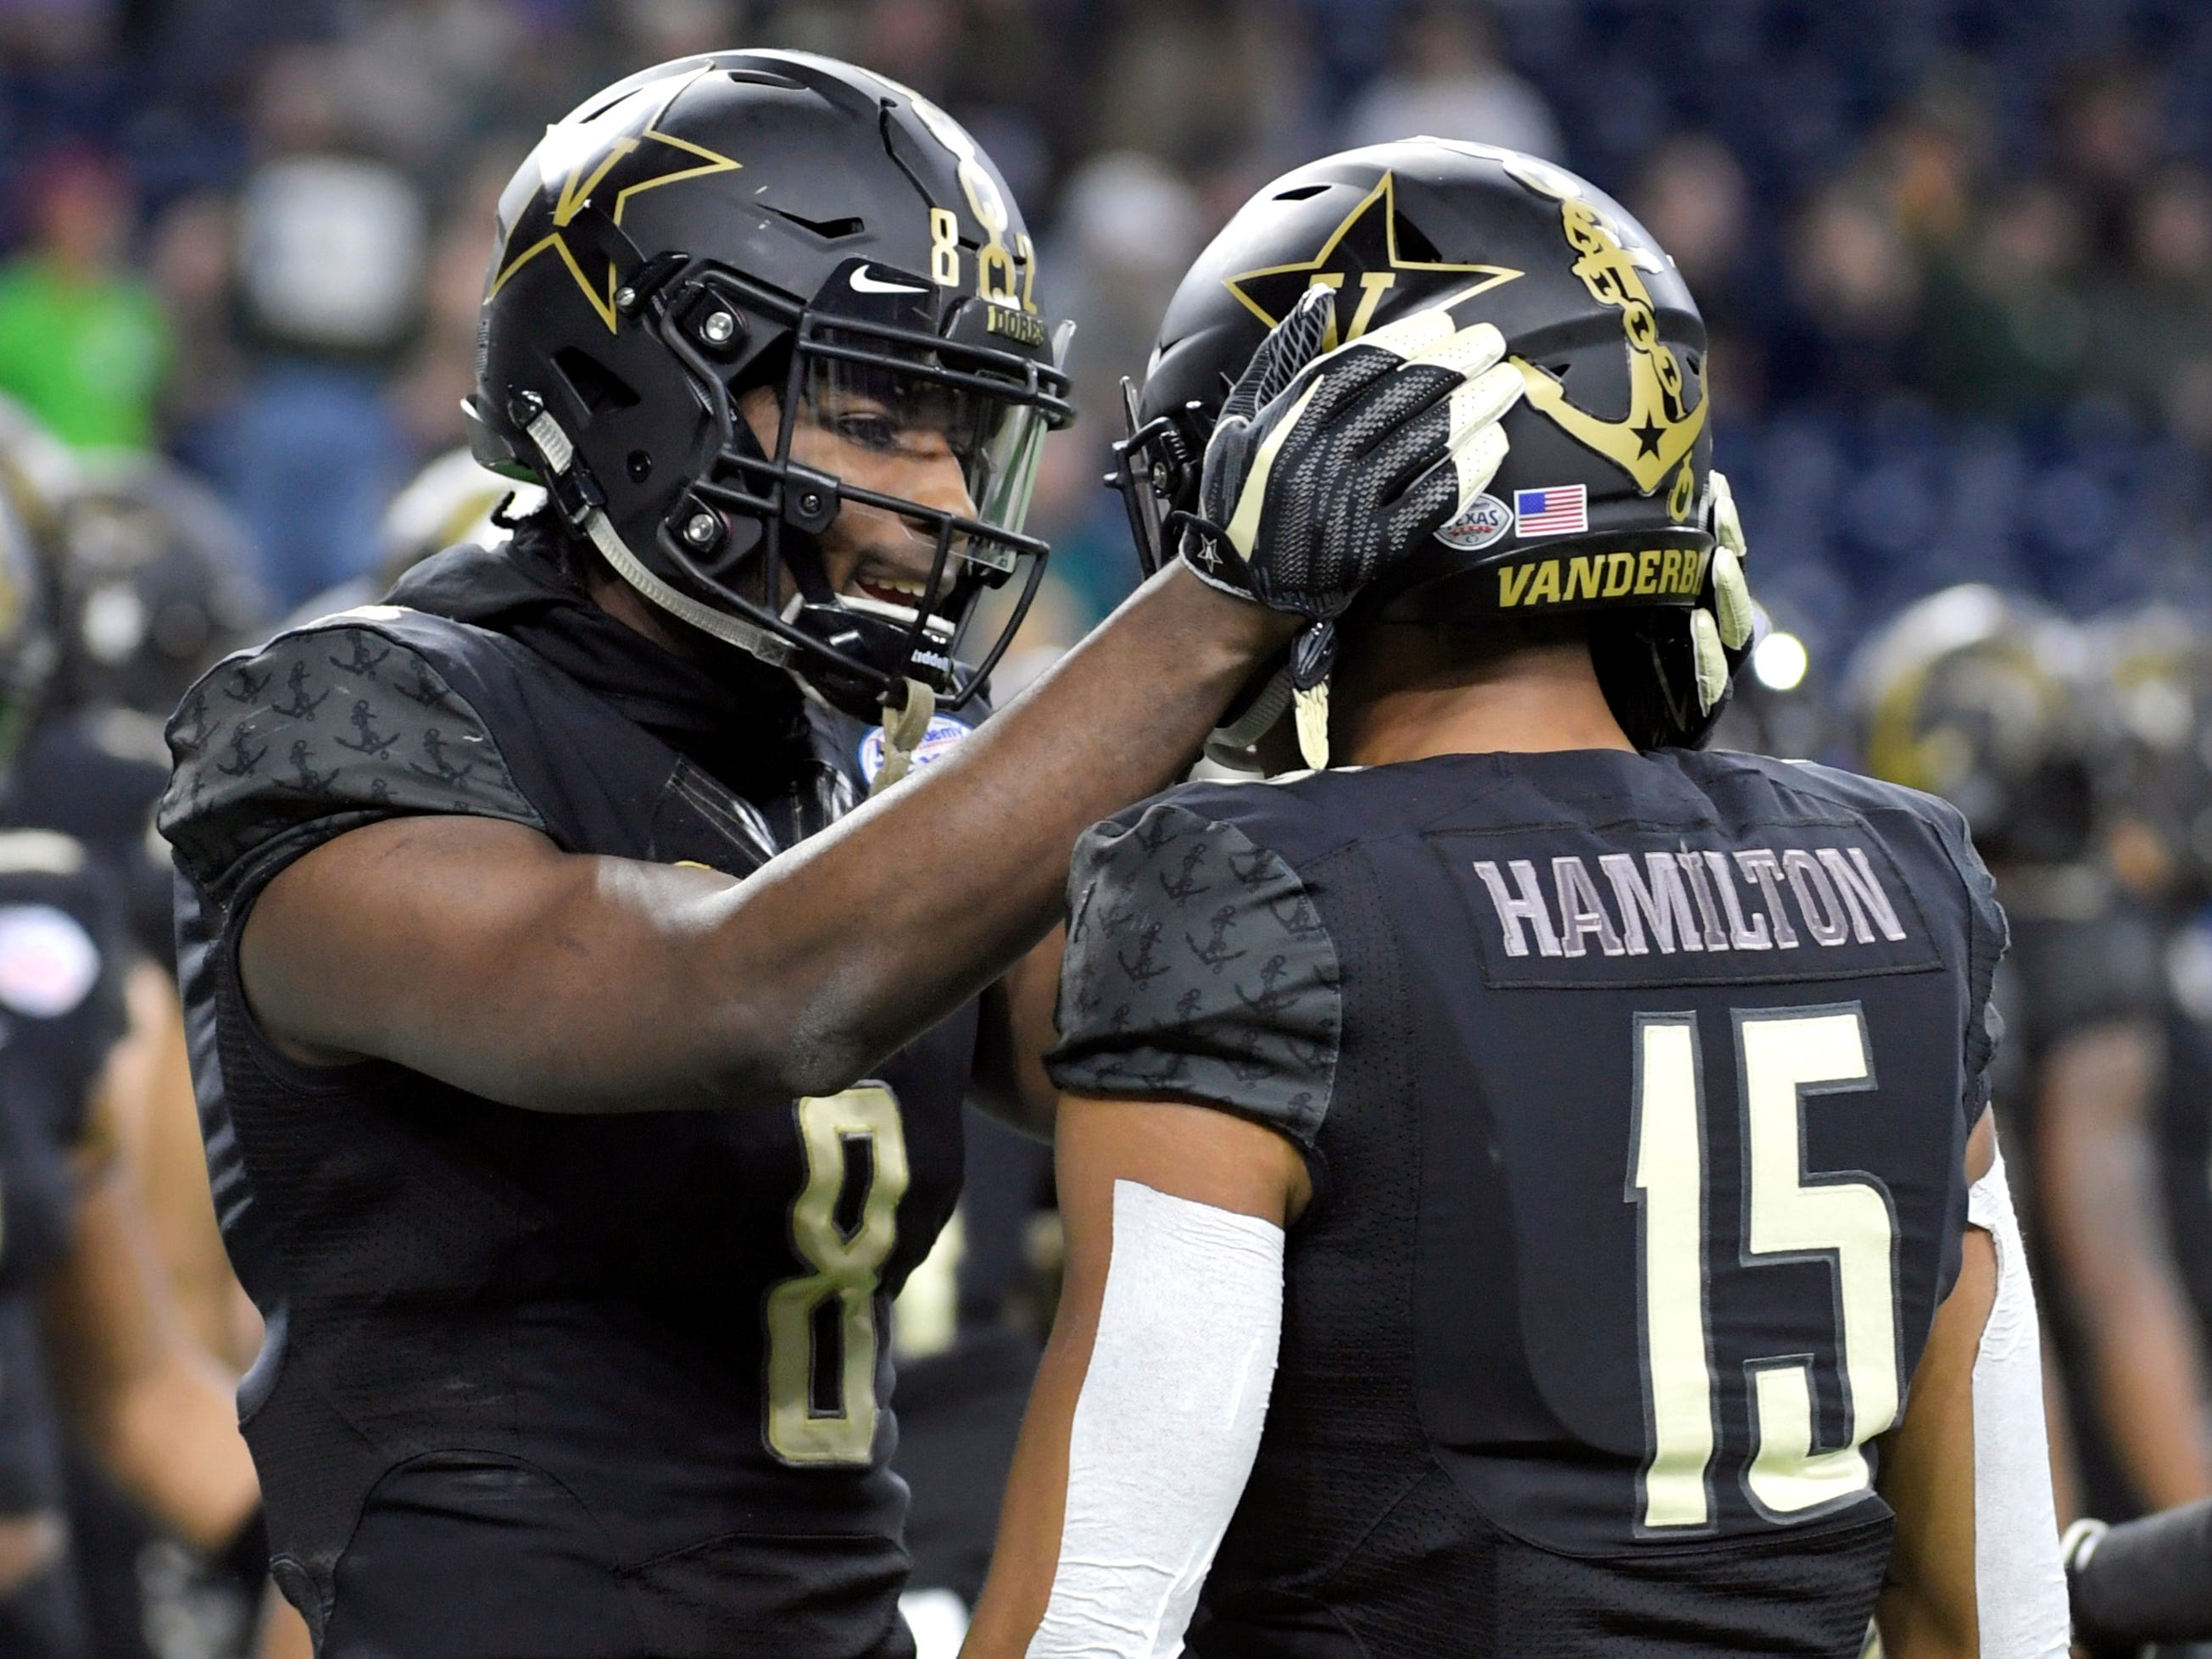 Vanderbilt Commodores cornerback Joejuan Williams (8) and Vanderbilt Commodores defensive back Elijah Hamilton (15) warm up before the Academy Sports + Outdoors Texas Bowl at NRG Stadium in Houston on Thursday, Dec. 27, 2018.